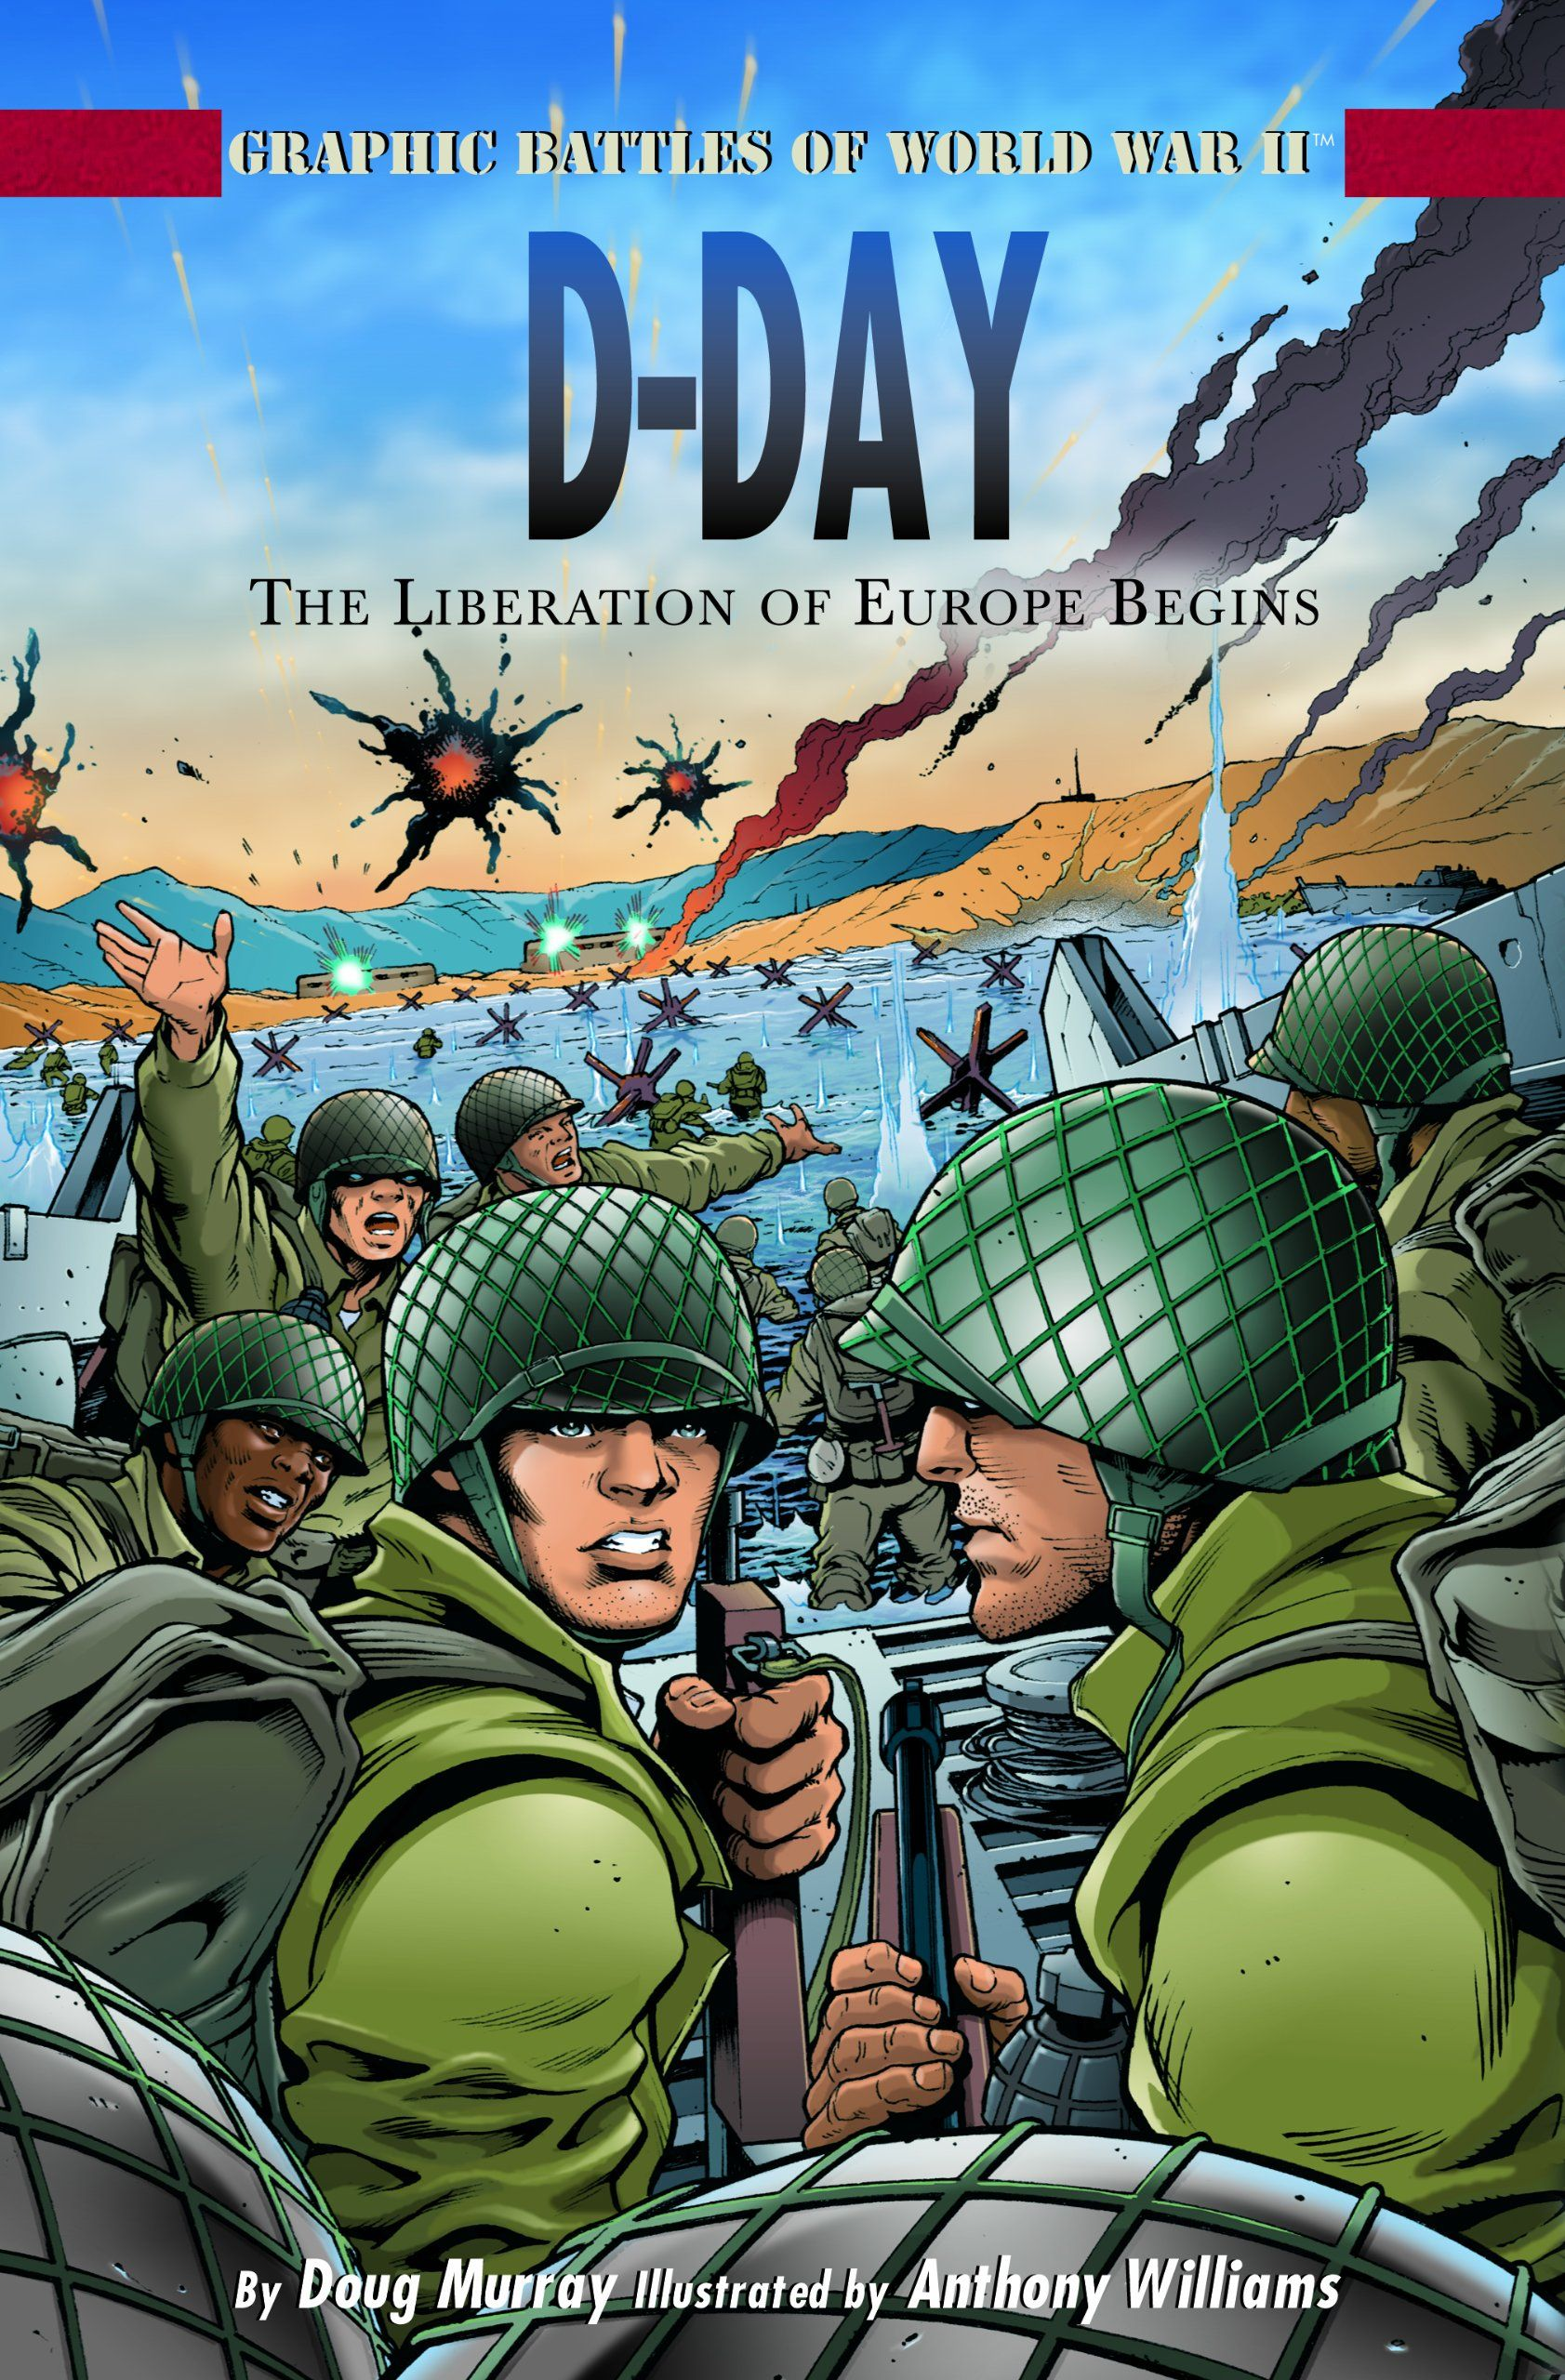 D Day The Liberation Of Europe Begins Graphic Battles Of